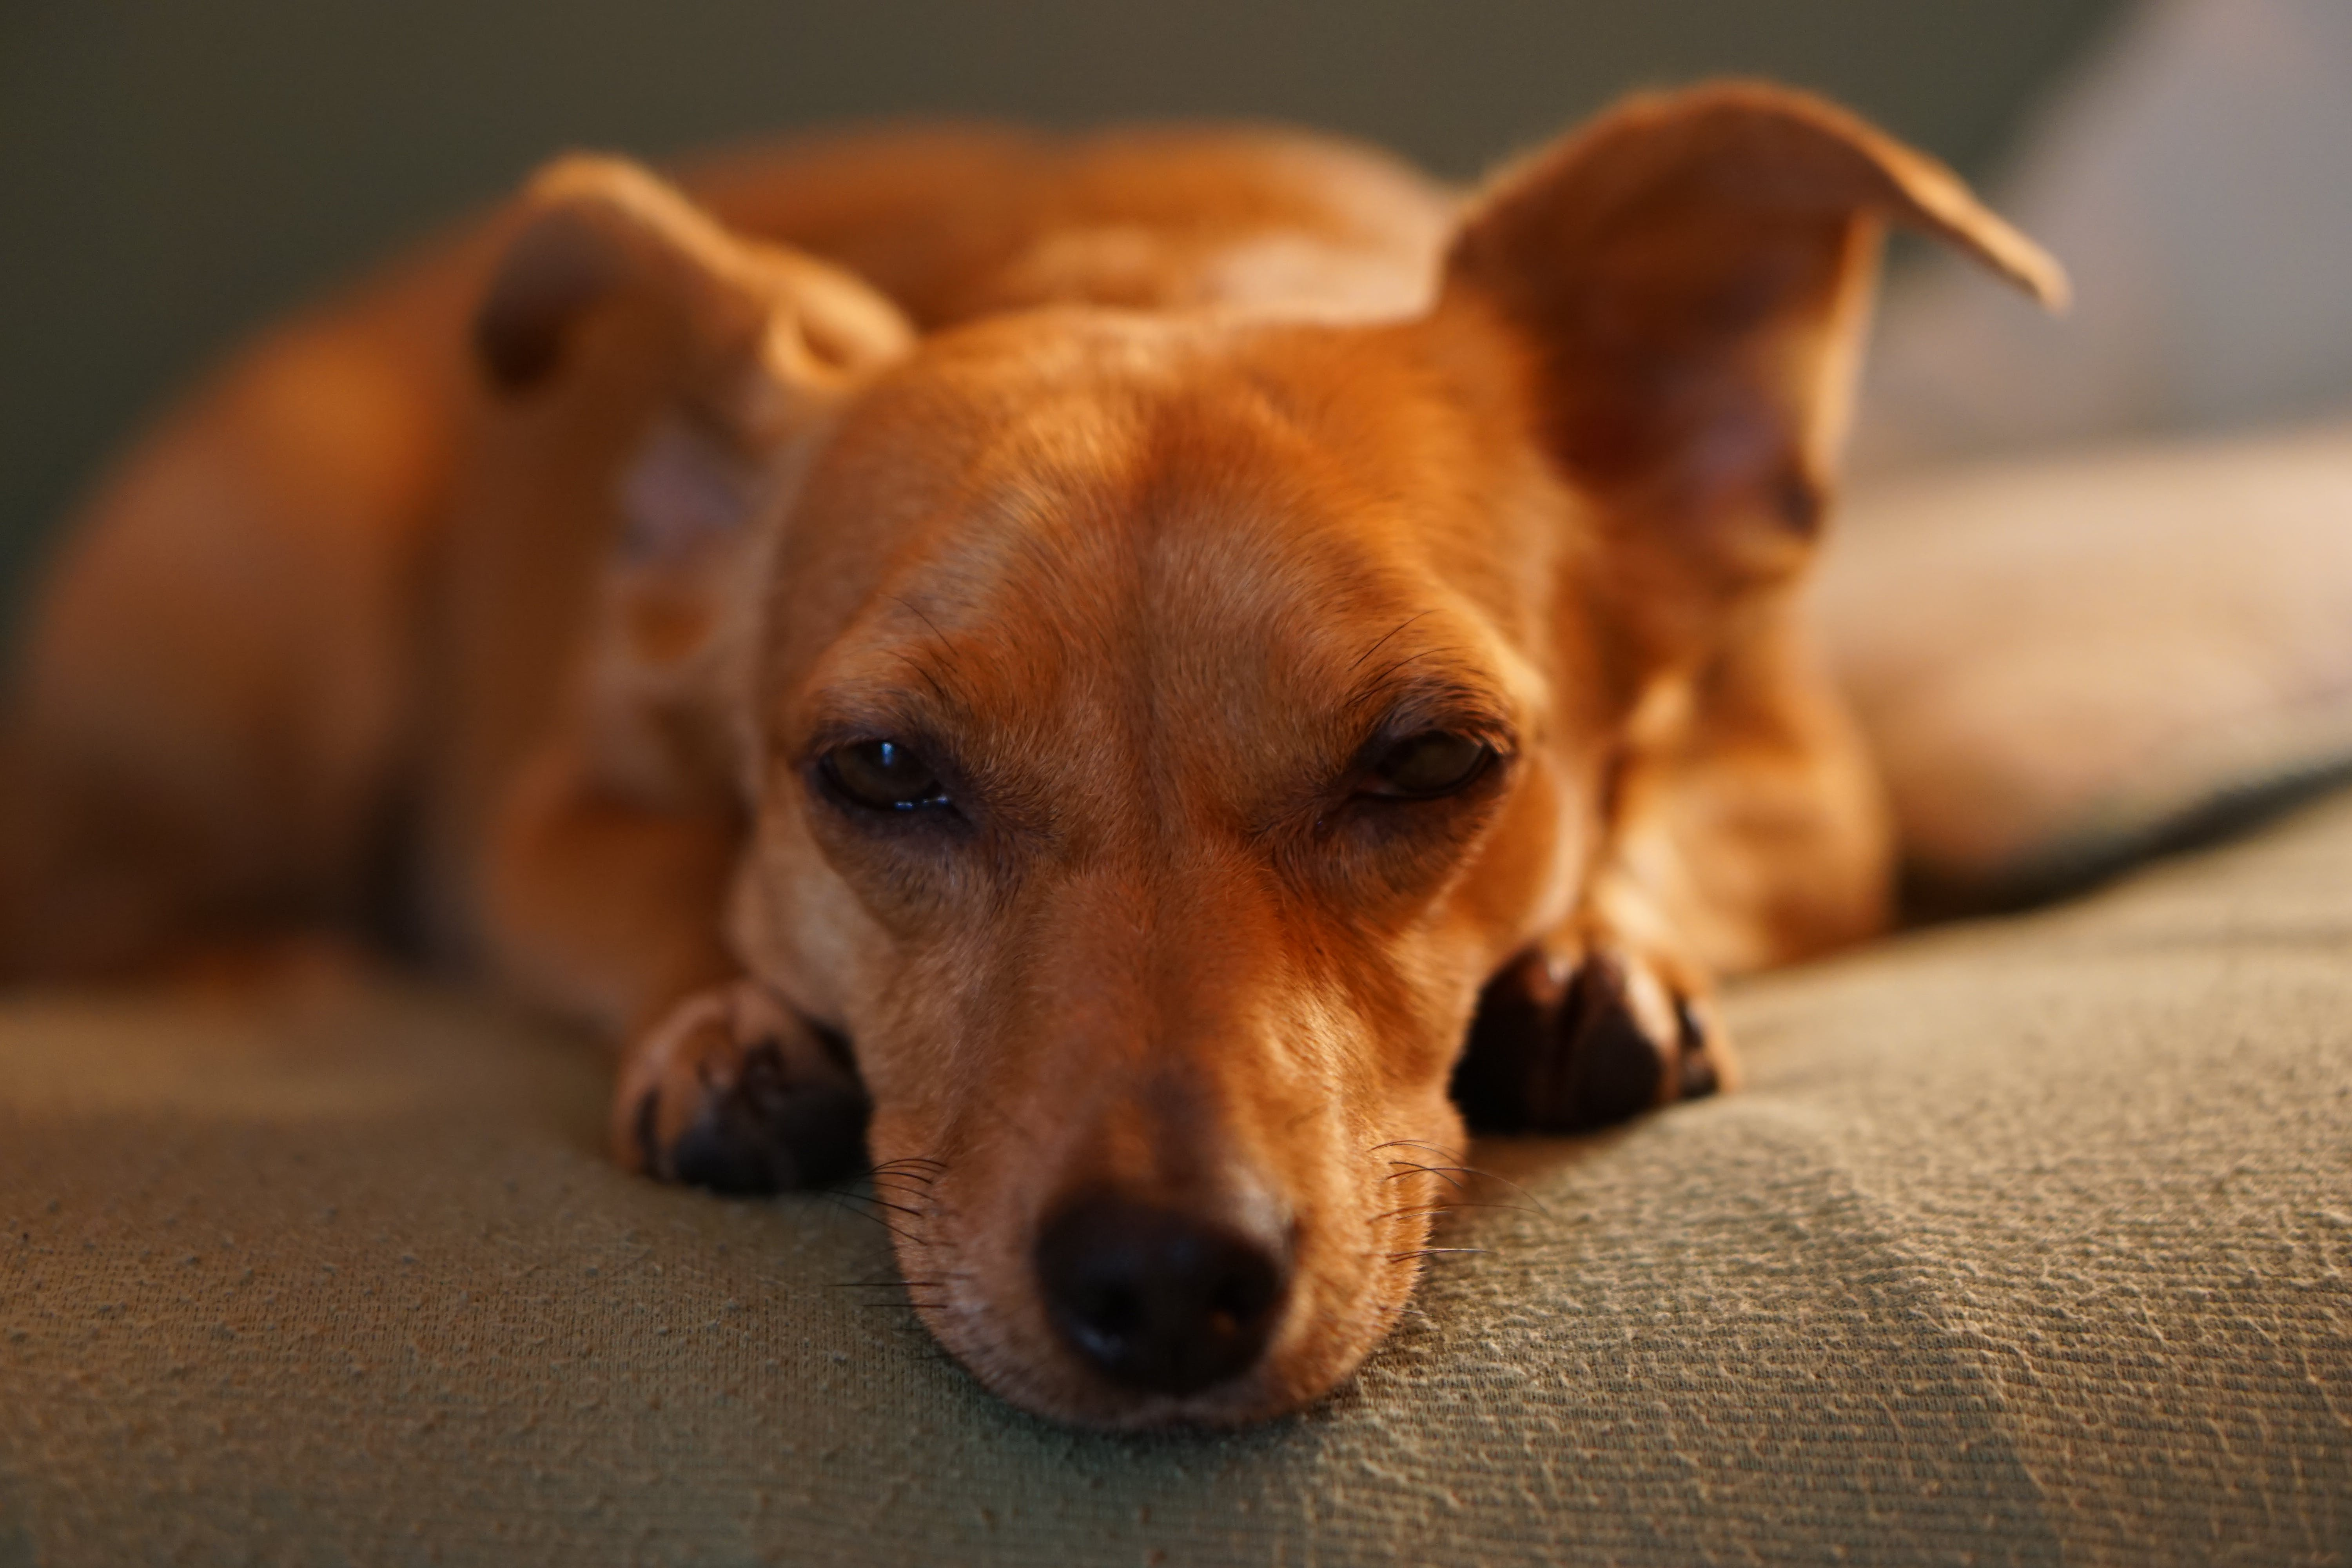 Adult Smooth Brown Dog Lying on Gray Bed Linen Close-up Photo